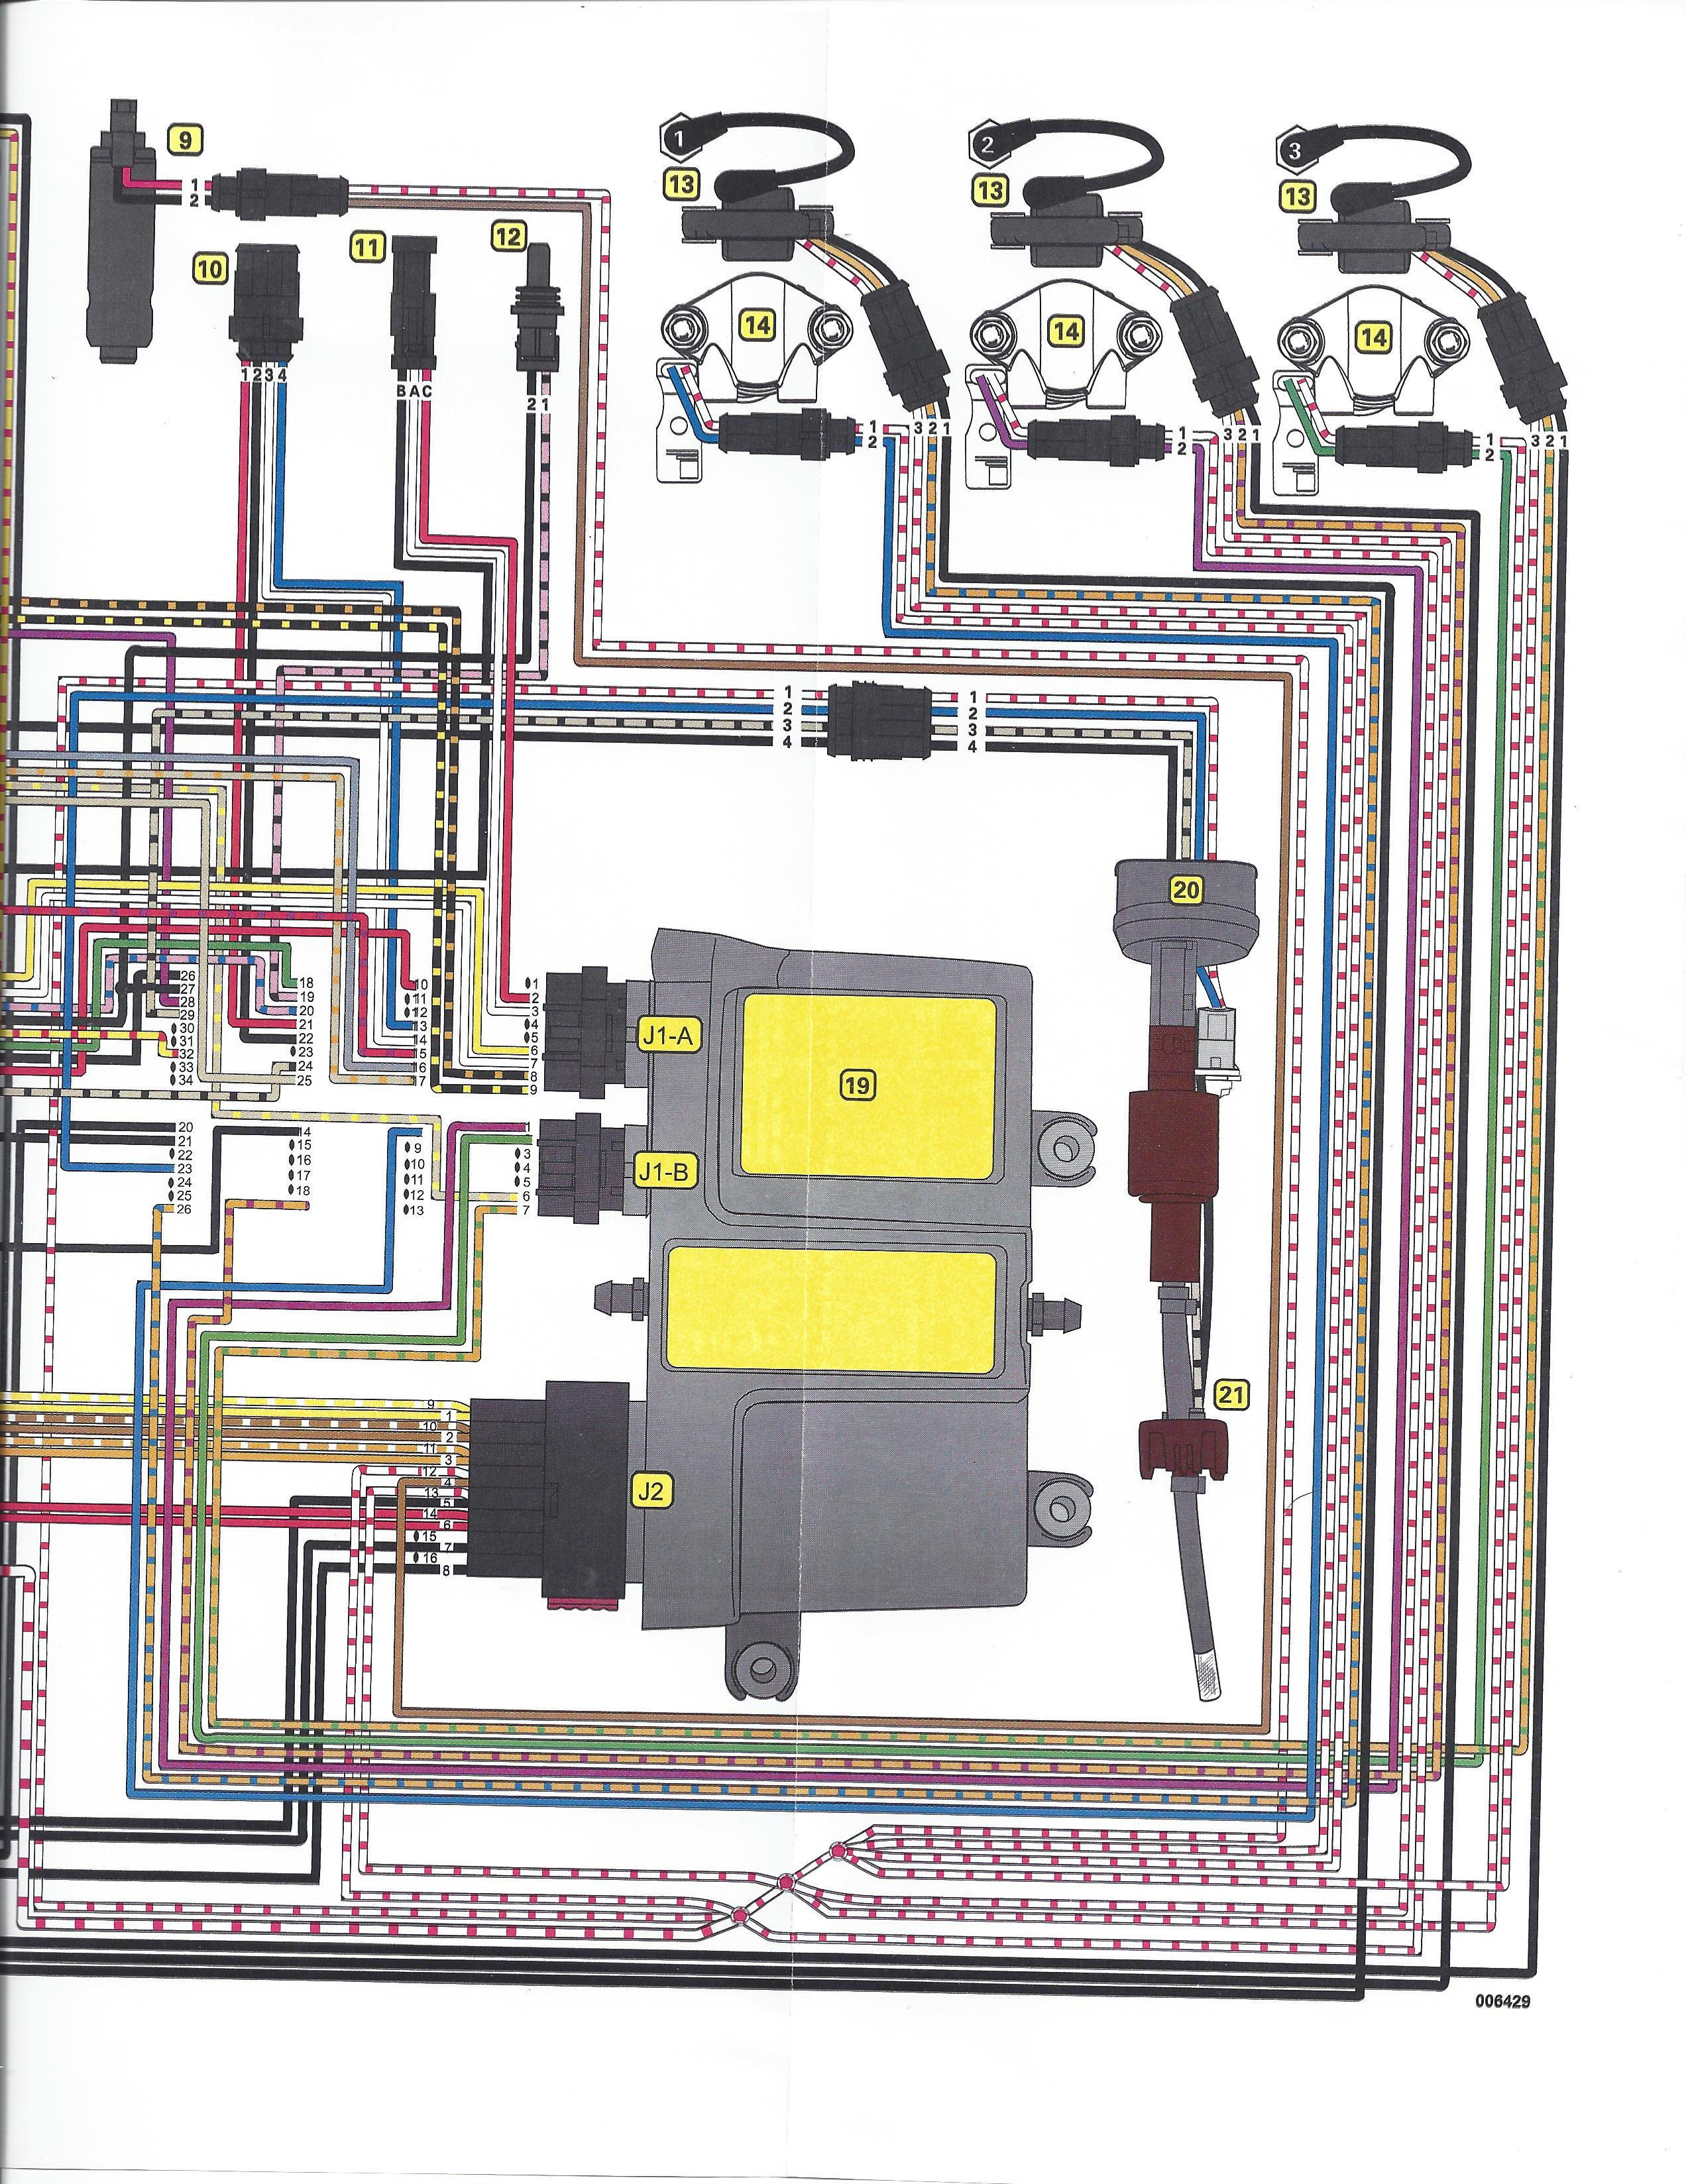 2013 08 02_234014_scan mastertech marine evinrude johnson outboard wiring diagrams 800 etec wiring diagram at creativeand.co